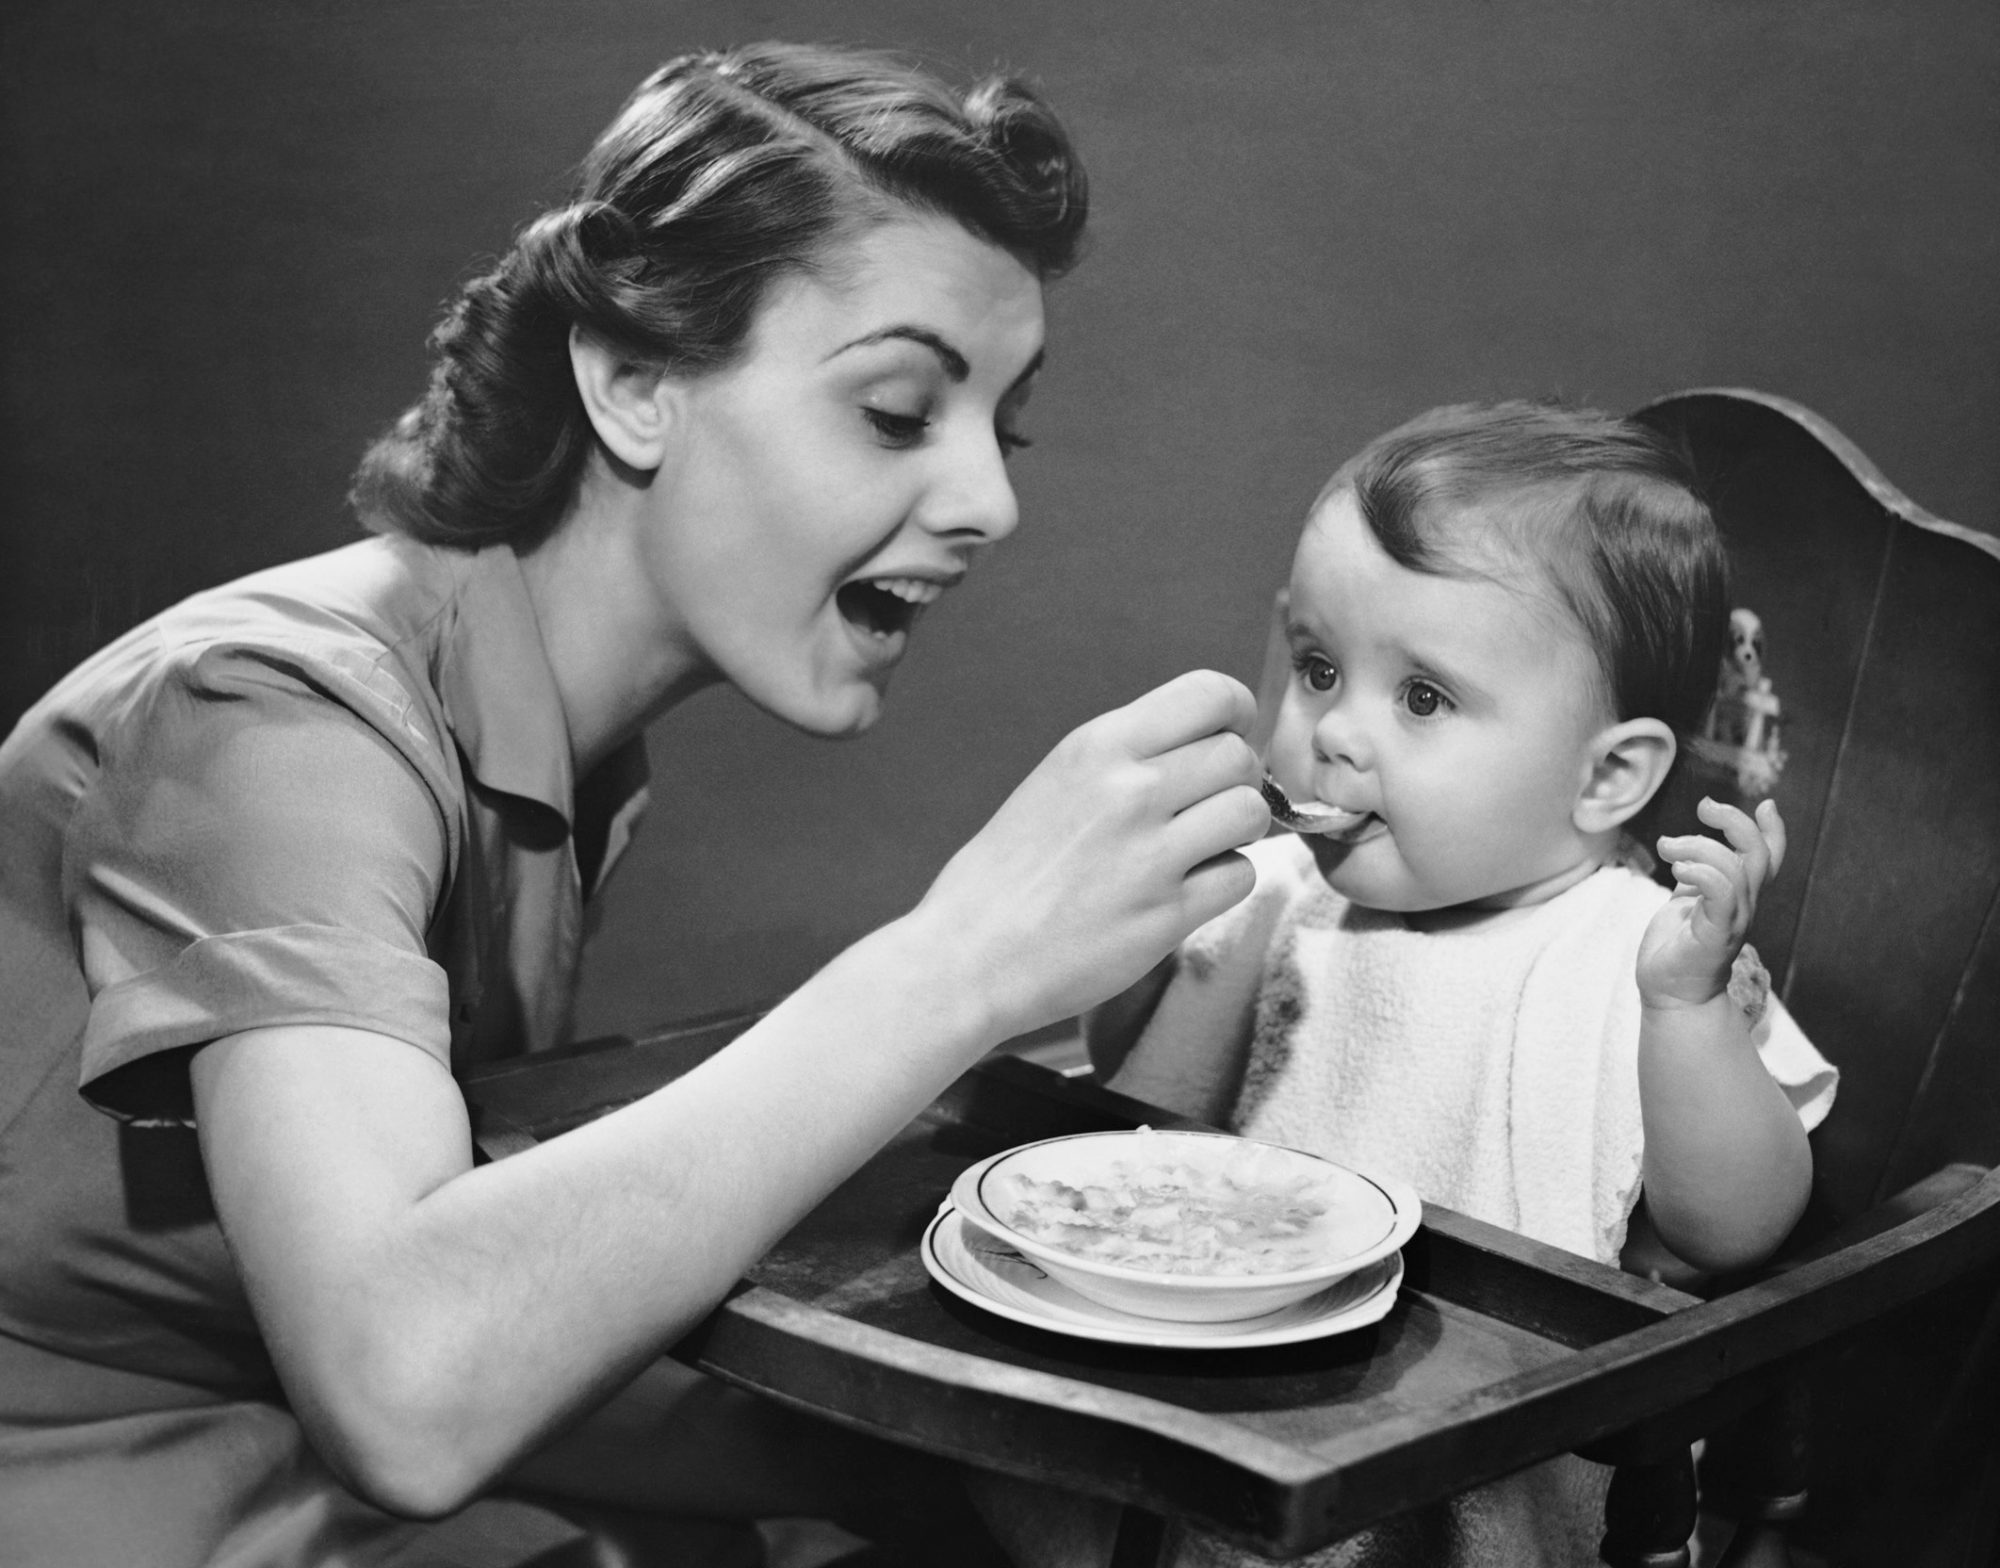 Mother feeding baby vintage photo